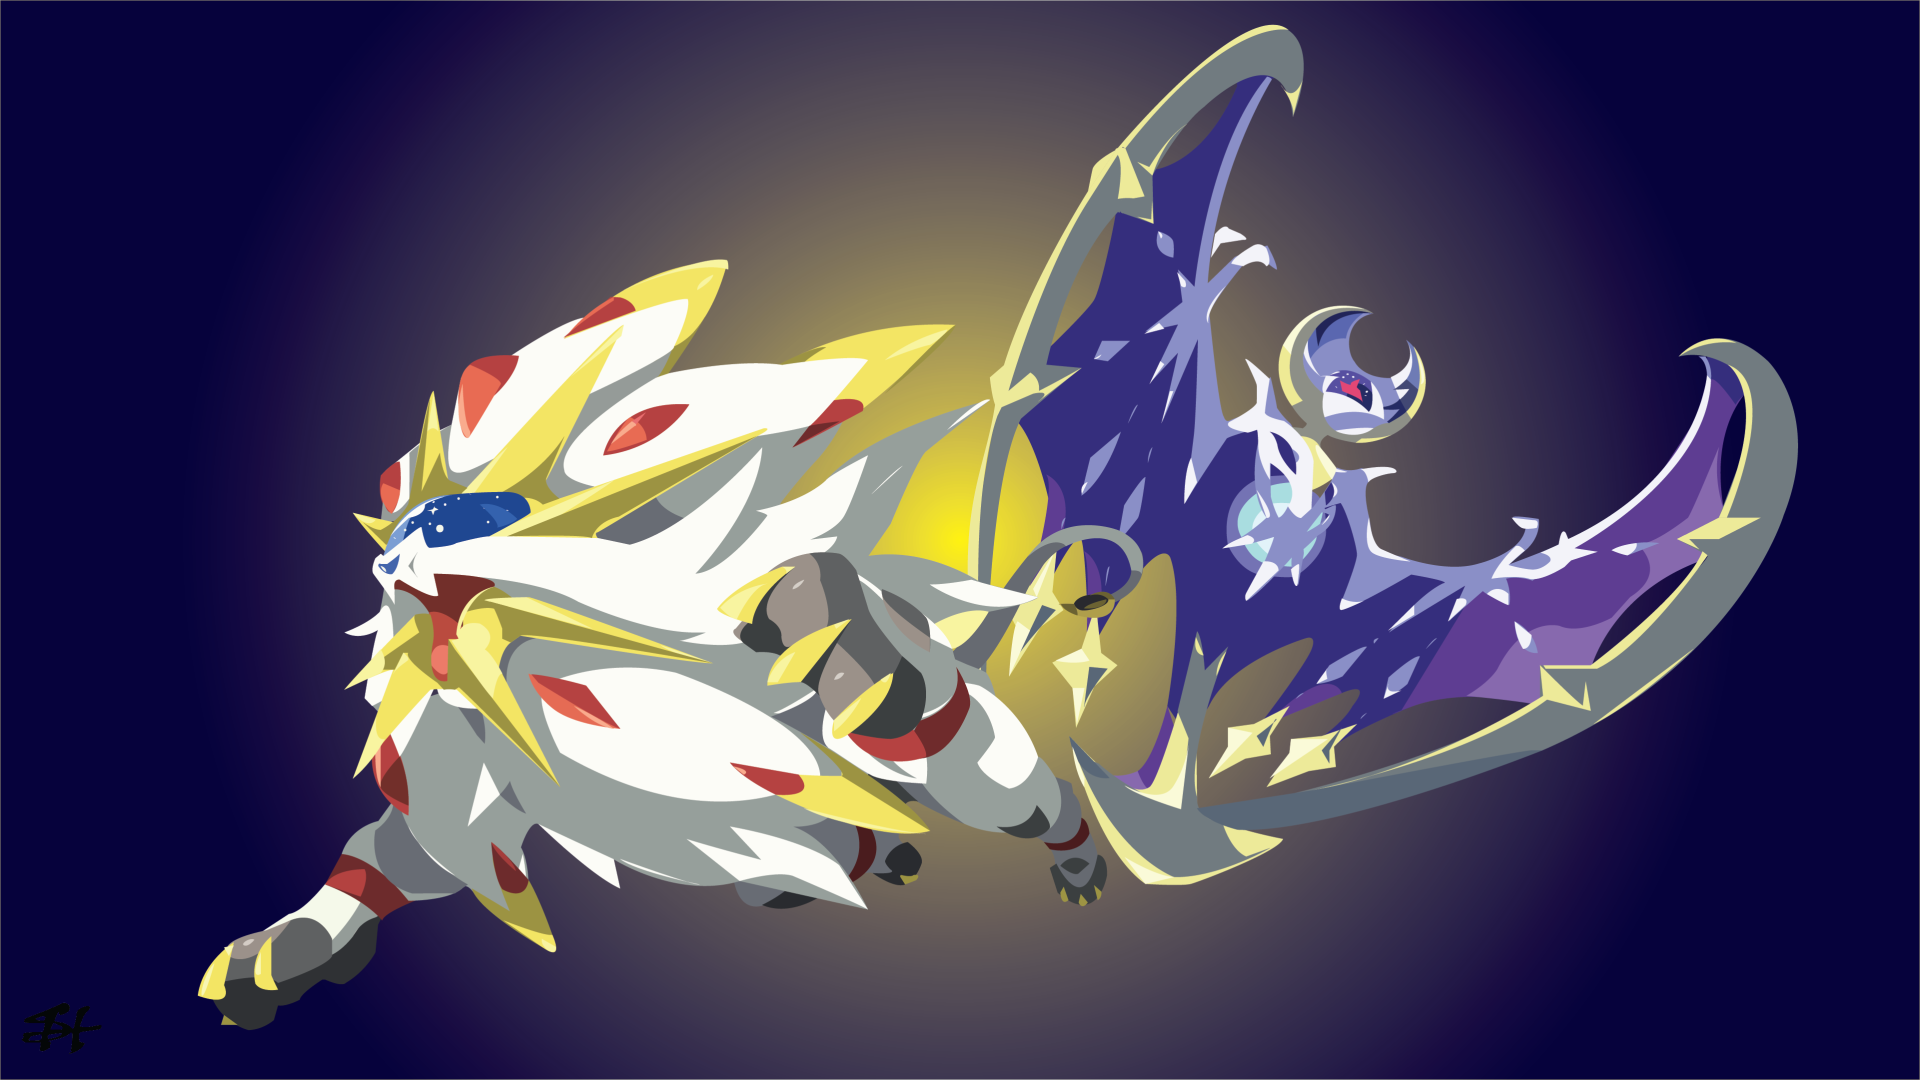 Video Game - Pokémon: Sun and Moon  Lunala (Pokémon) Solgaleo (Pokémon) Pokémon Sun Pokémon Moon Pokémon Pokémon Sun And Moon Wallpaper